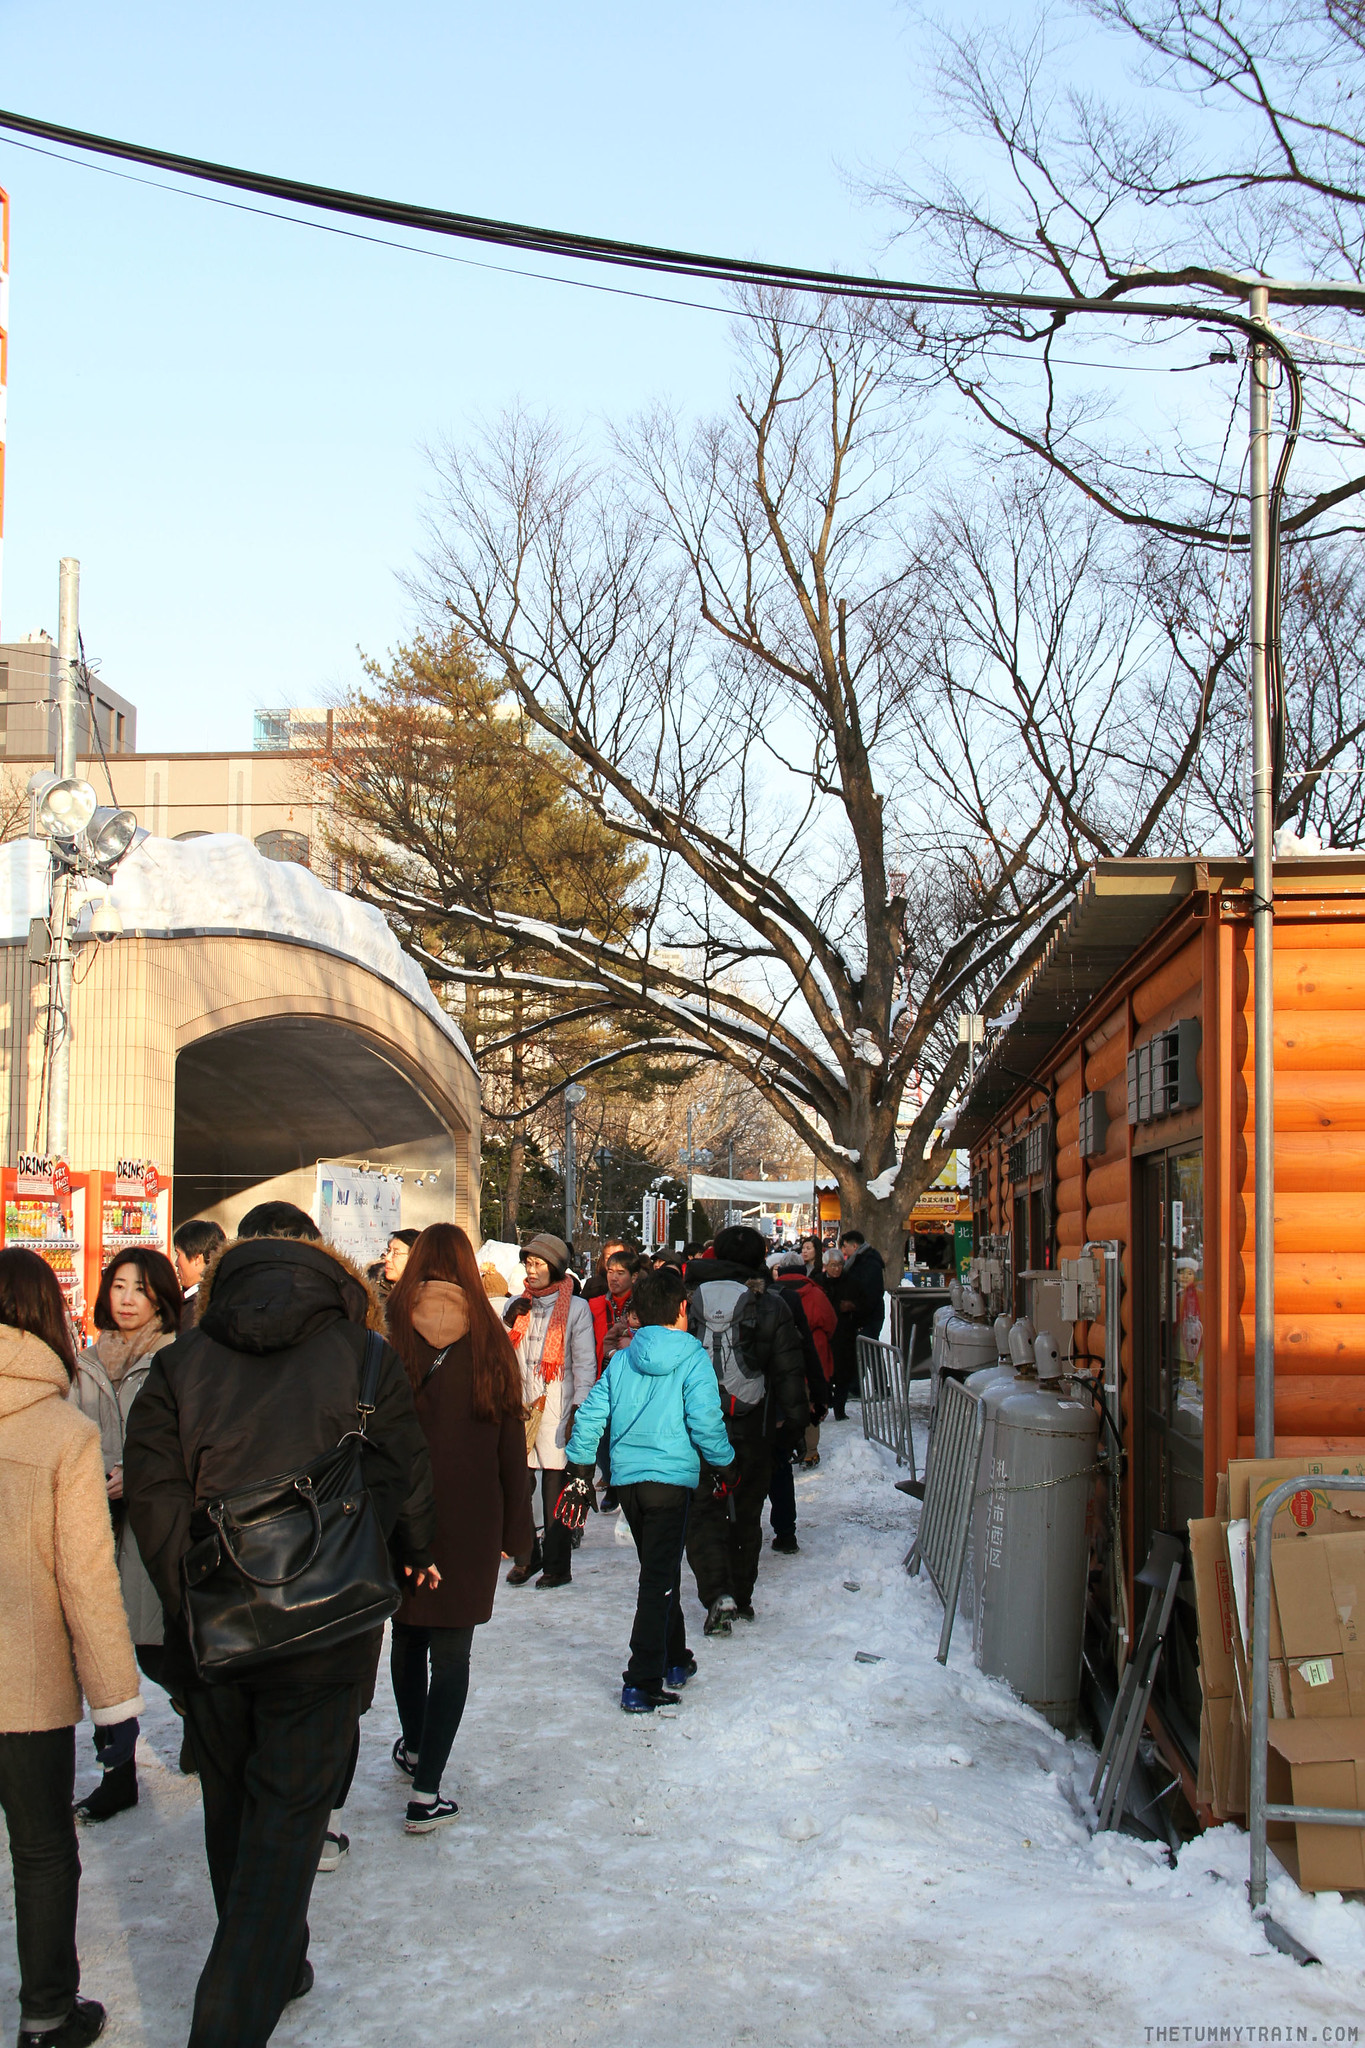 32763964472 bd58bc3a9e k - Sights, Sounds, and Smells at the 68th Sapporo Snow Festival at Odori Park